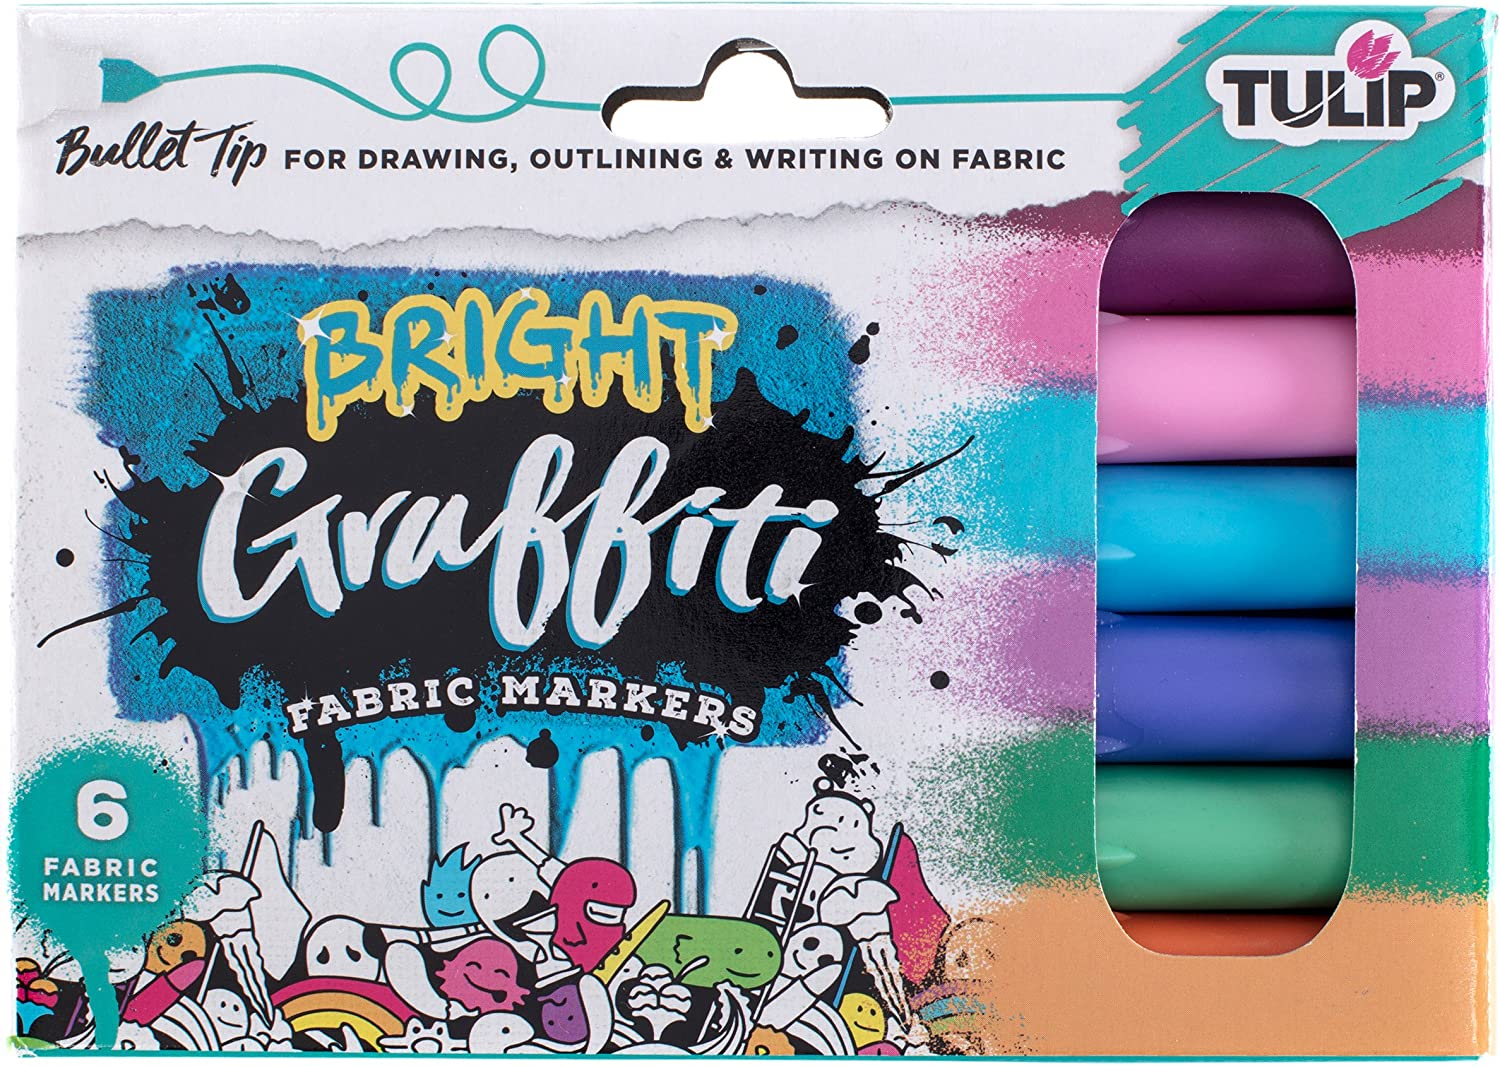 Tulip Graffiti Fabric Markers Bullet Tip 6pk, Bright, Premium Quality Ink, Permanent, Child Safe, for Fabric Painting, Drawing, Coloring, Writing on Clothes